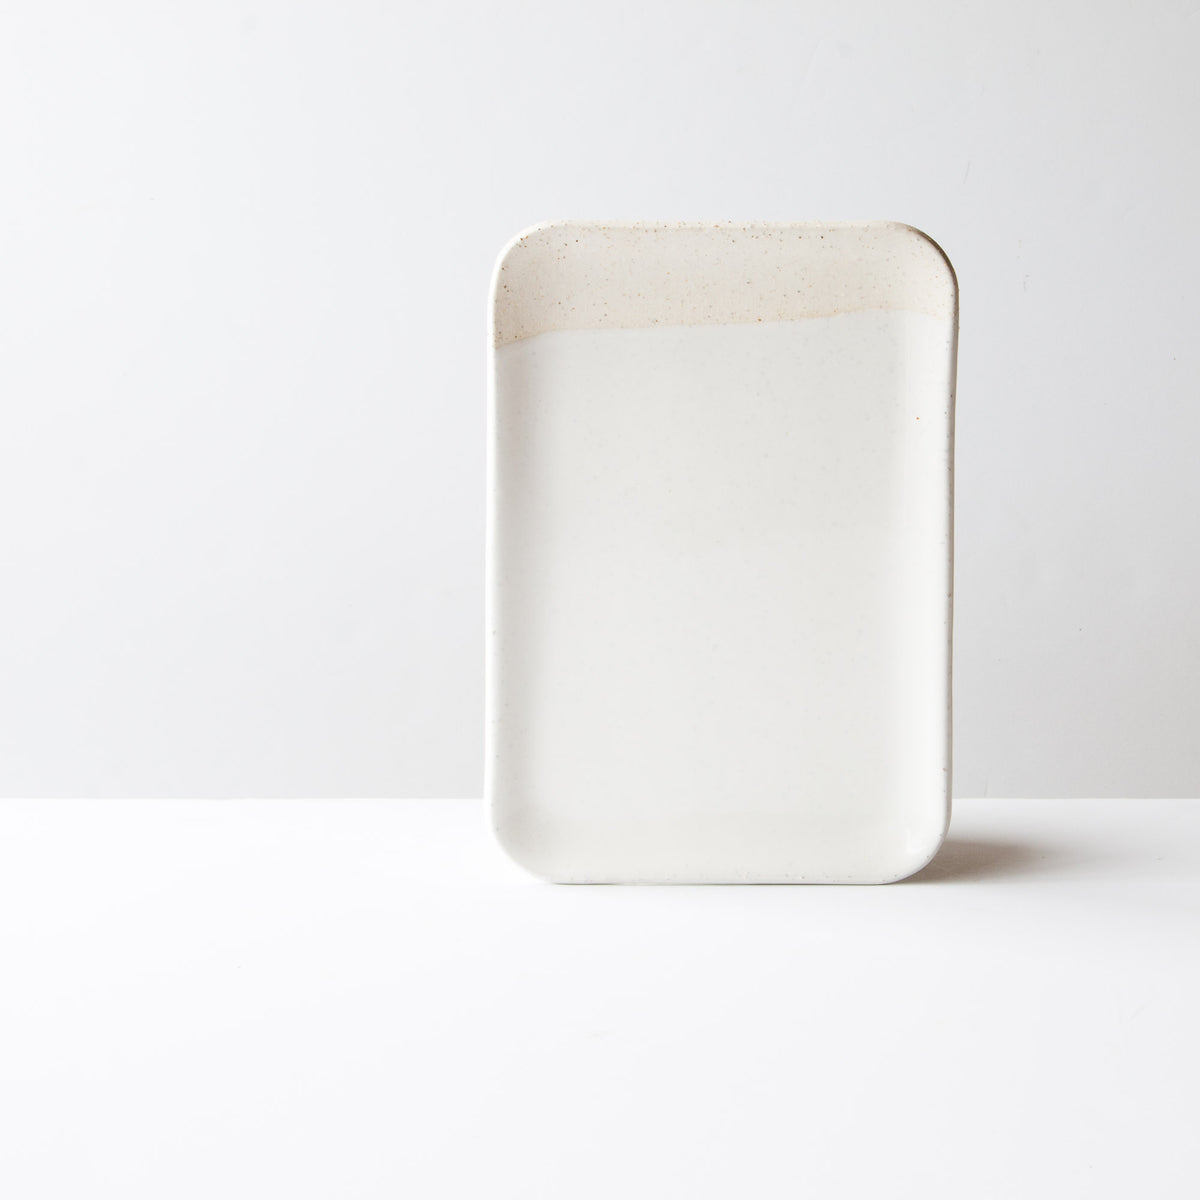 Oatmeal Clay - Soft White Glaze - Handmade Ceramic Small Square Serving Board